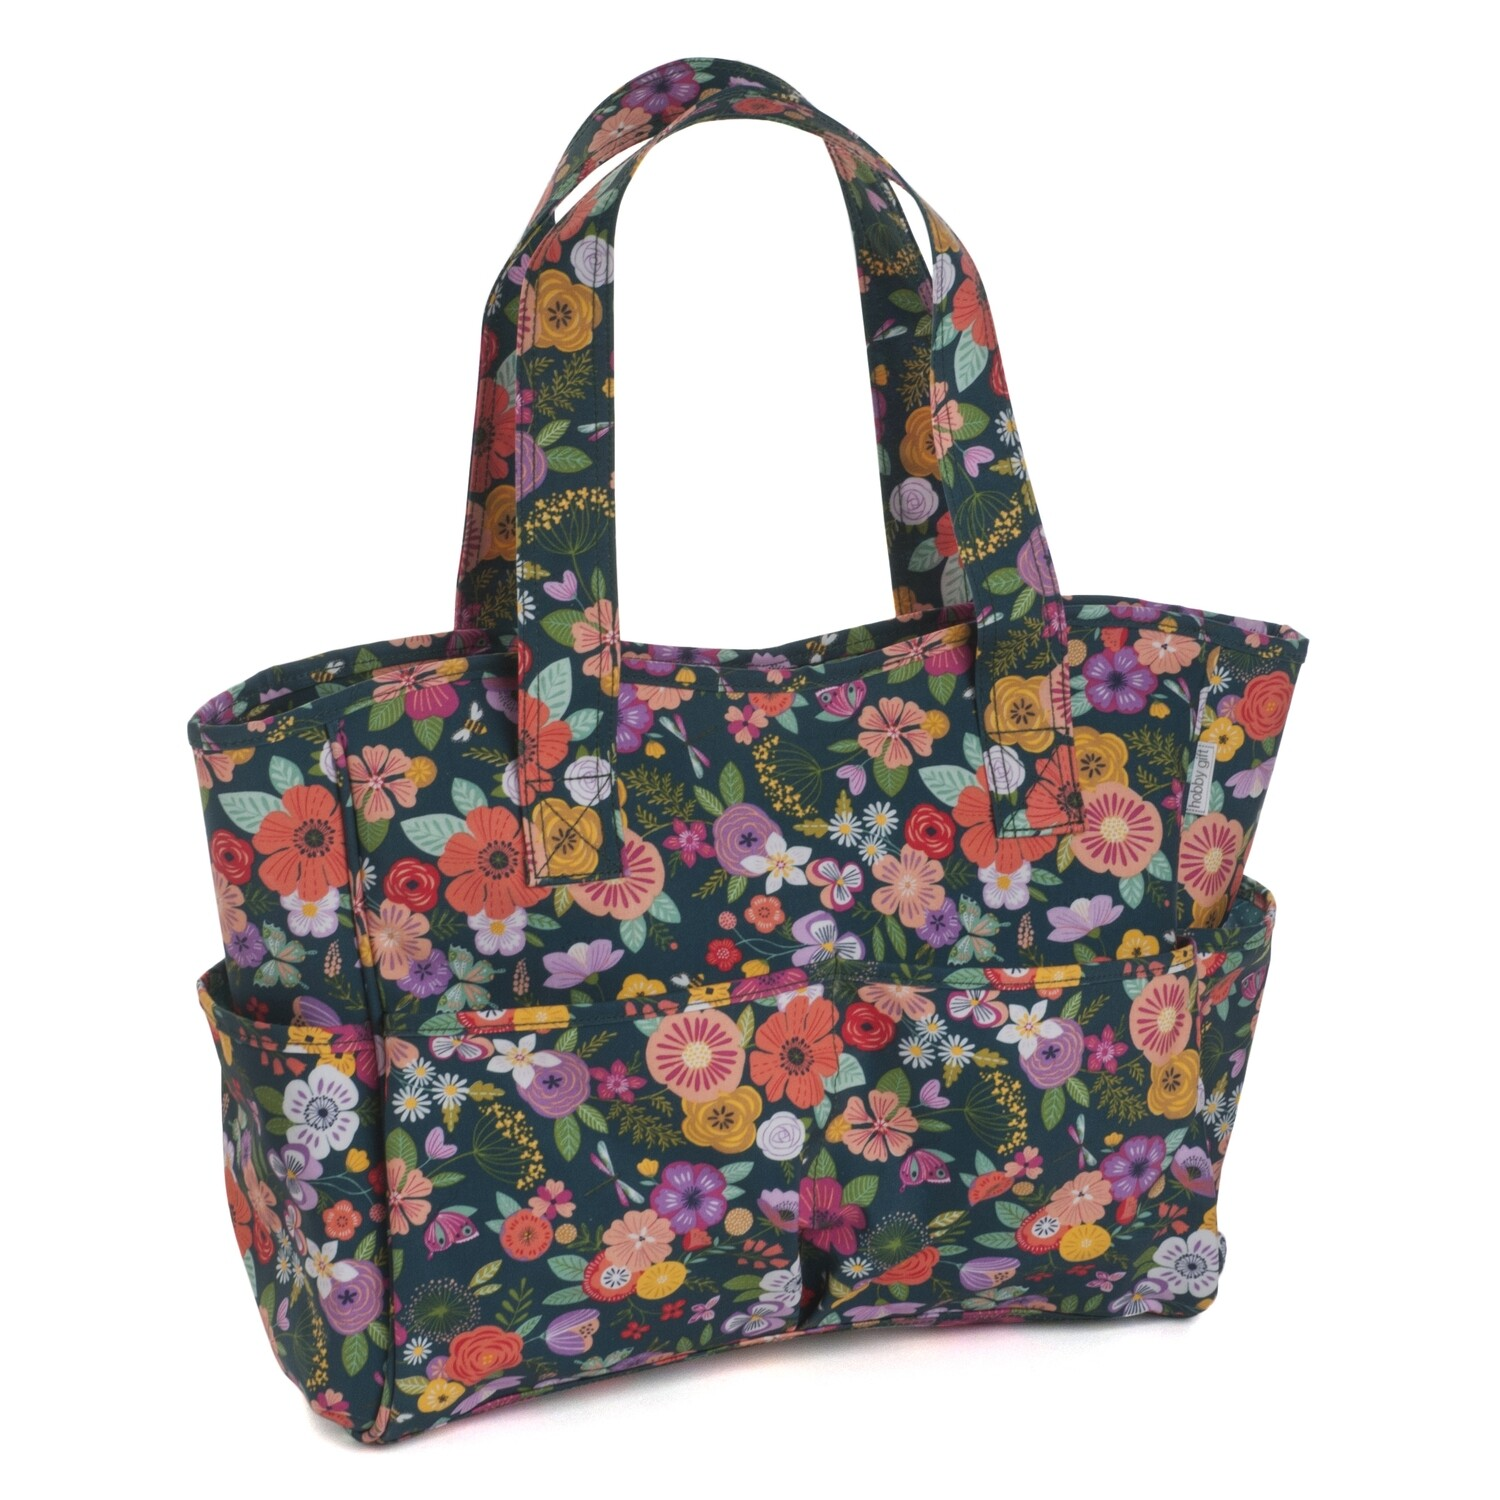 Craft Bag - Floral Garden Teal